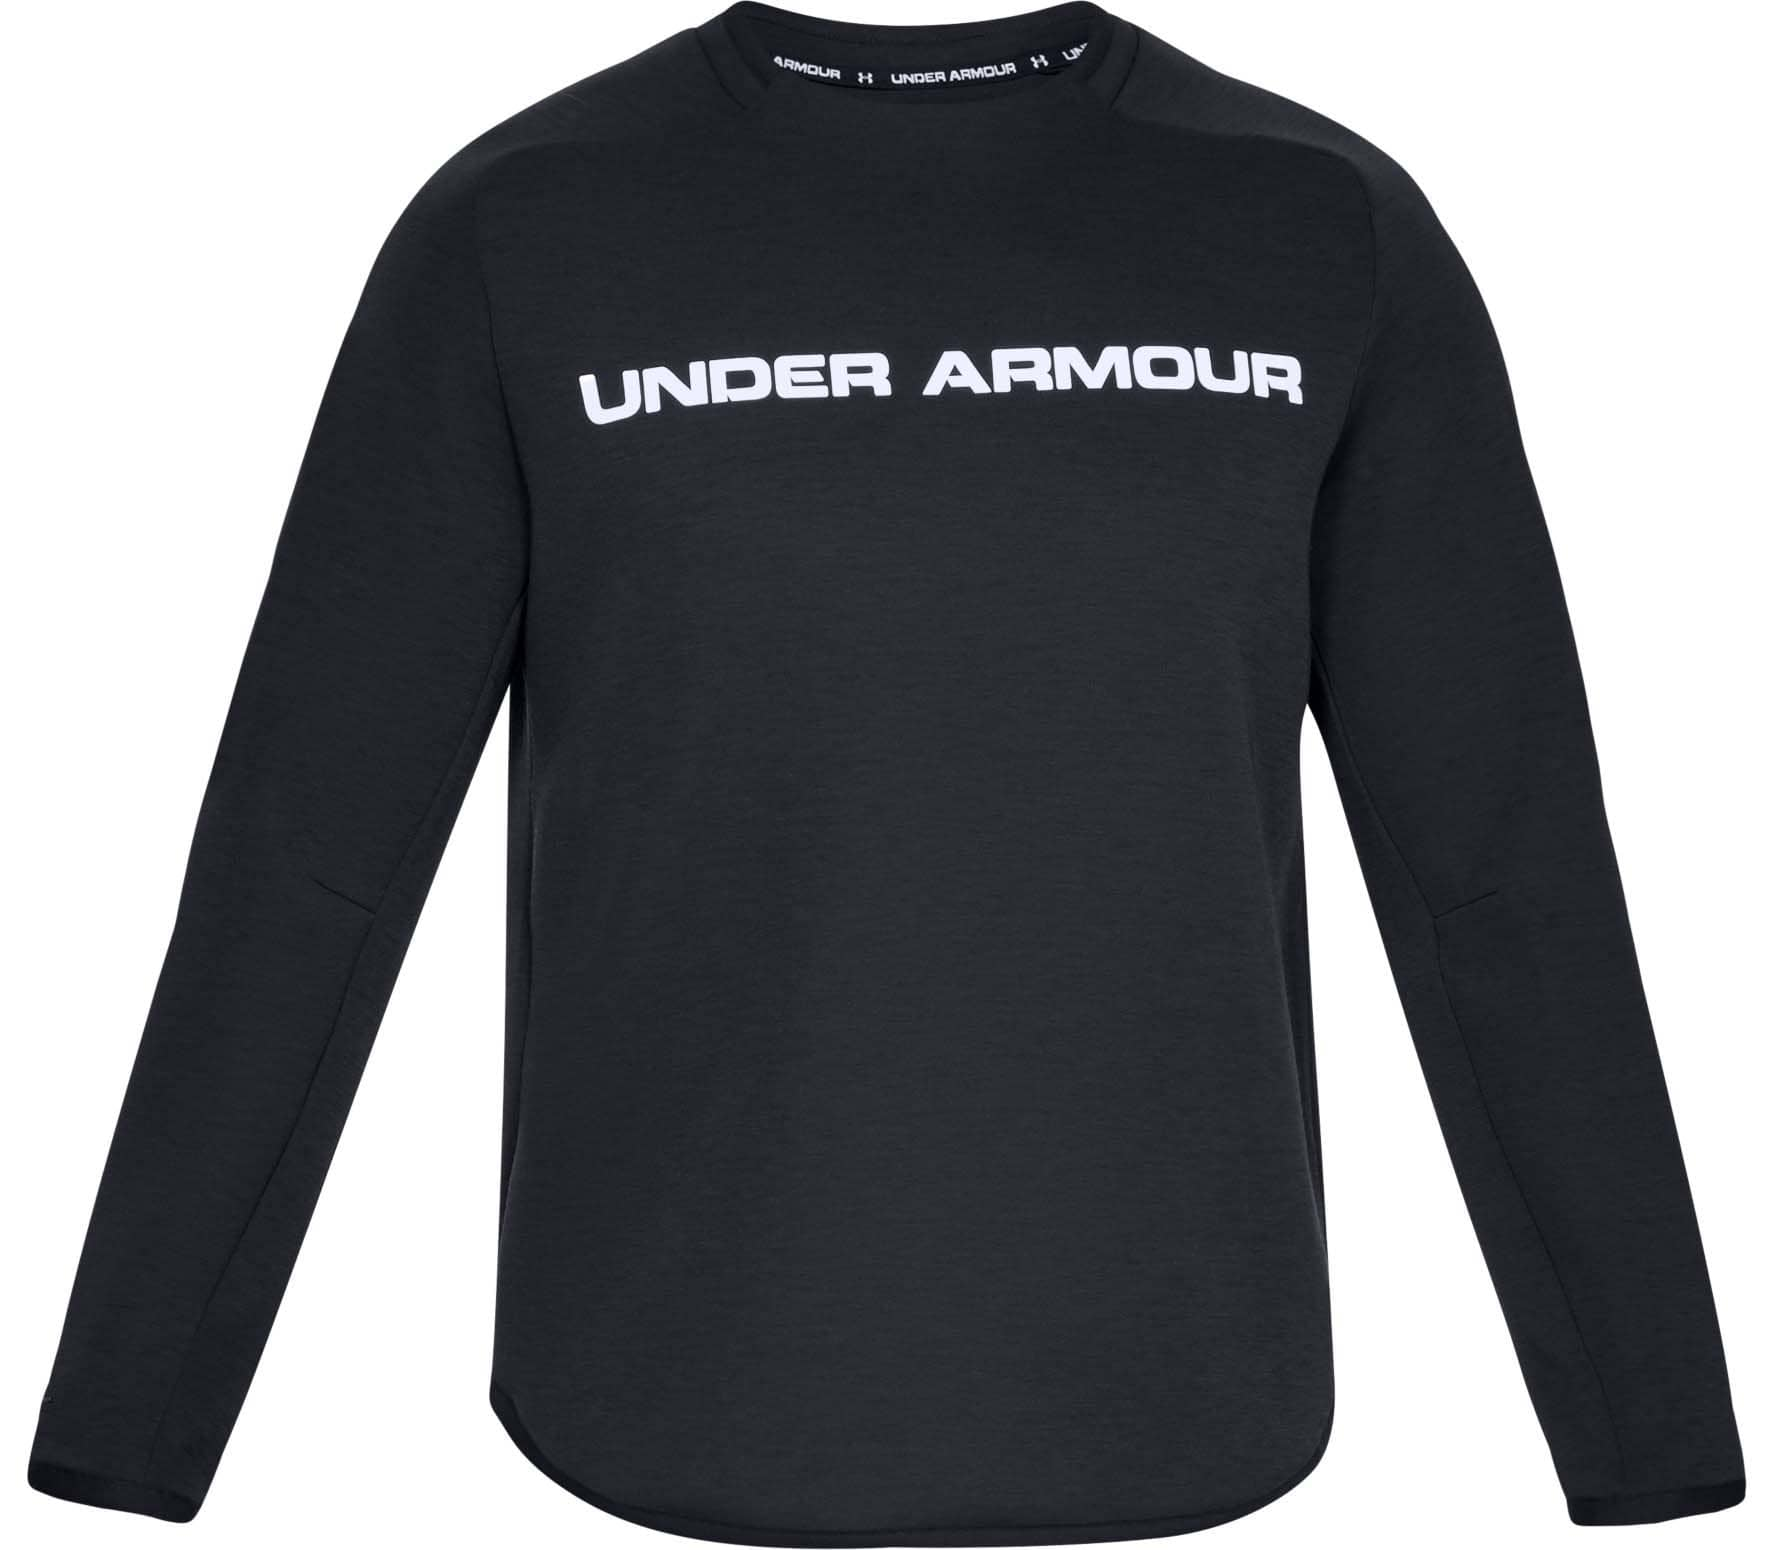 Zwart Overhemd Kopen.Under Armour Move Light Graphic Crew Heren Training Overhemd